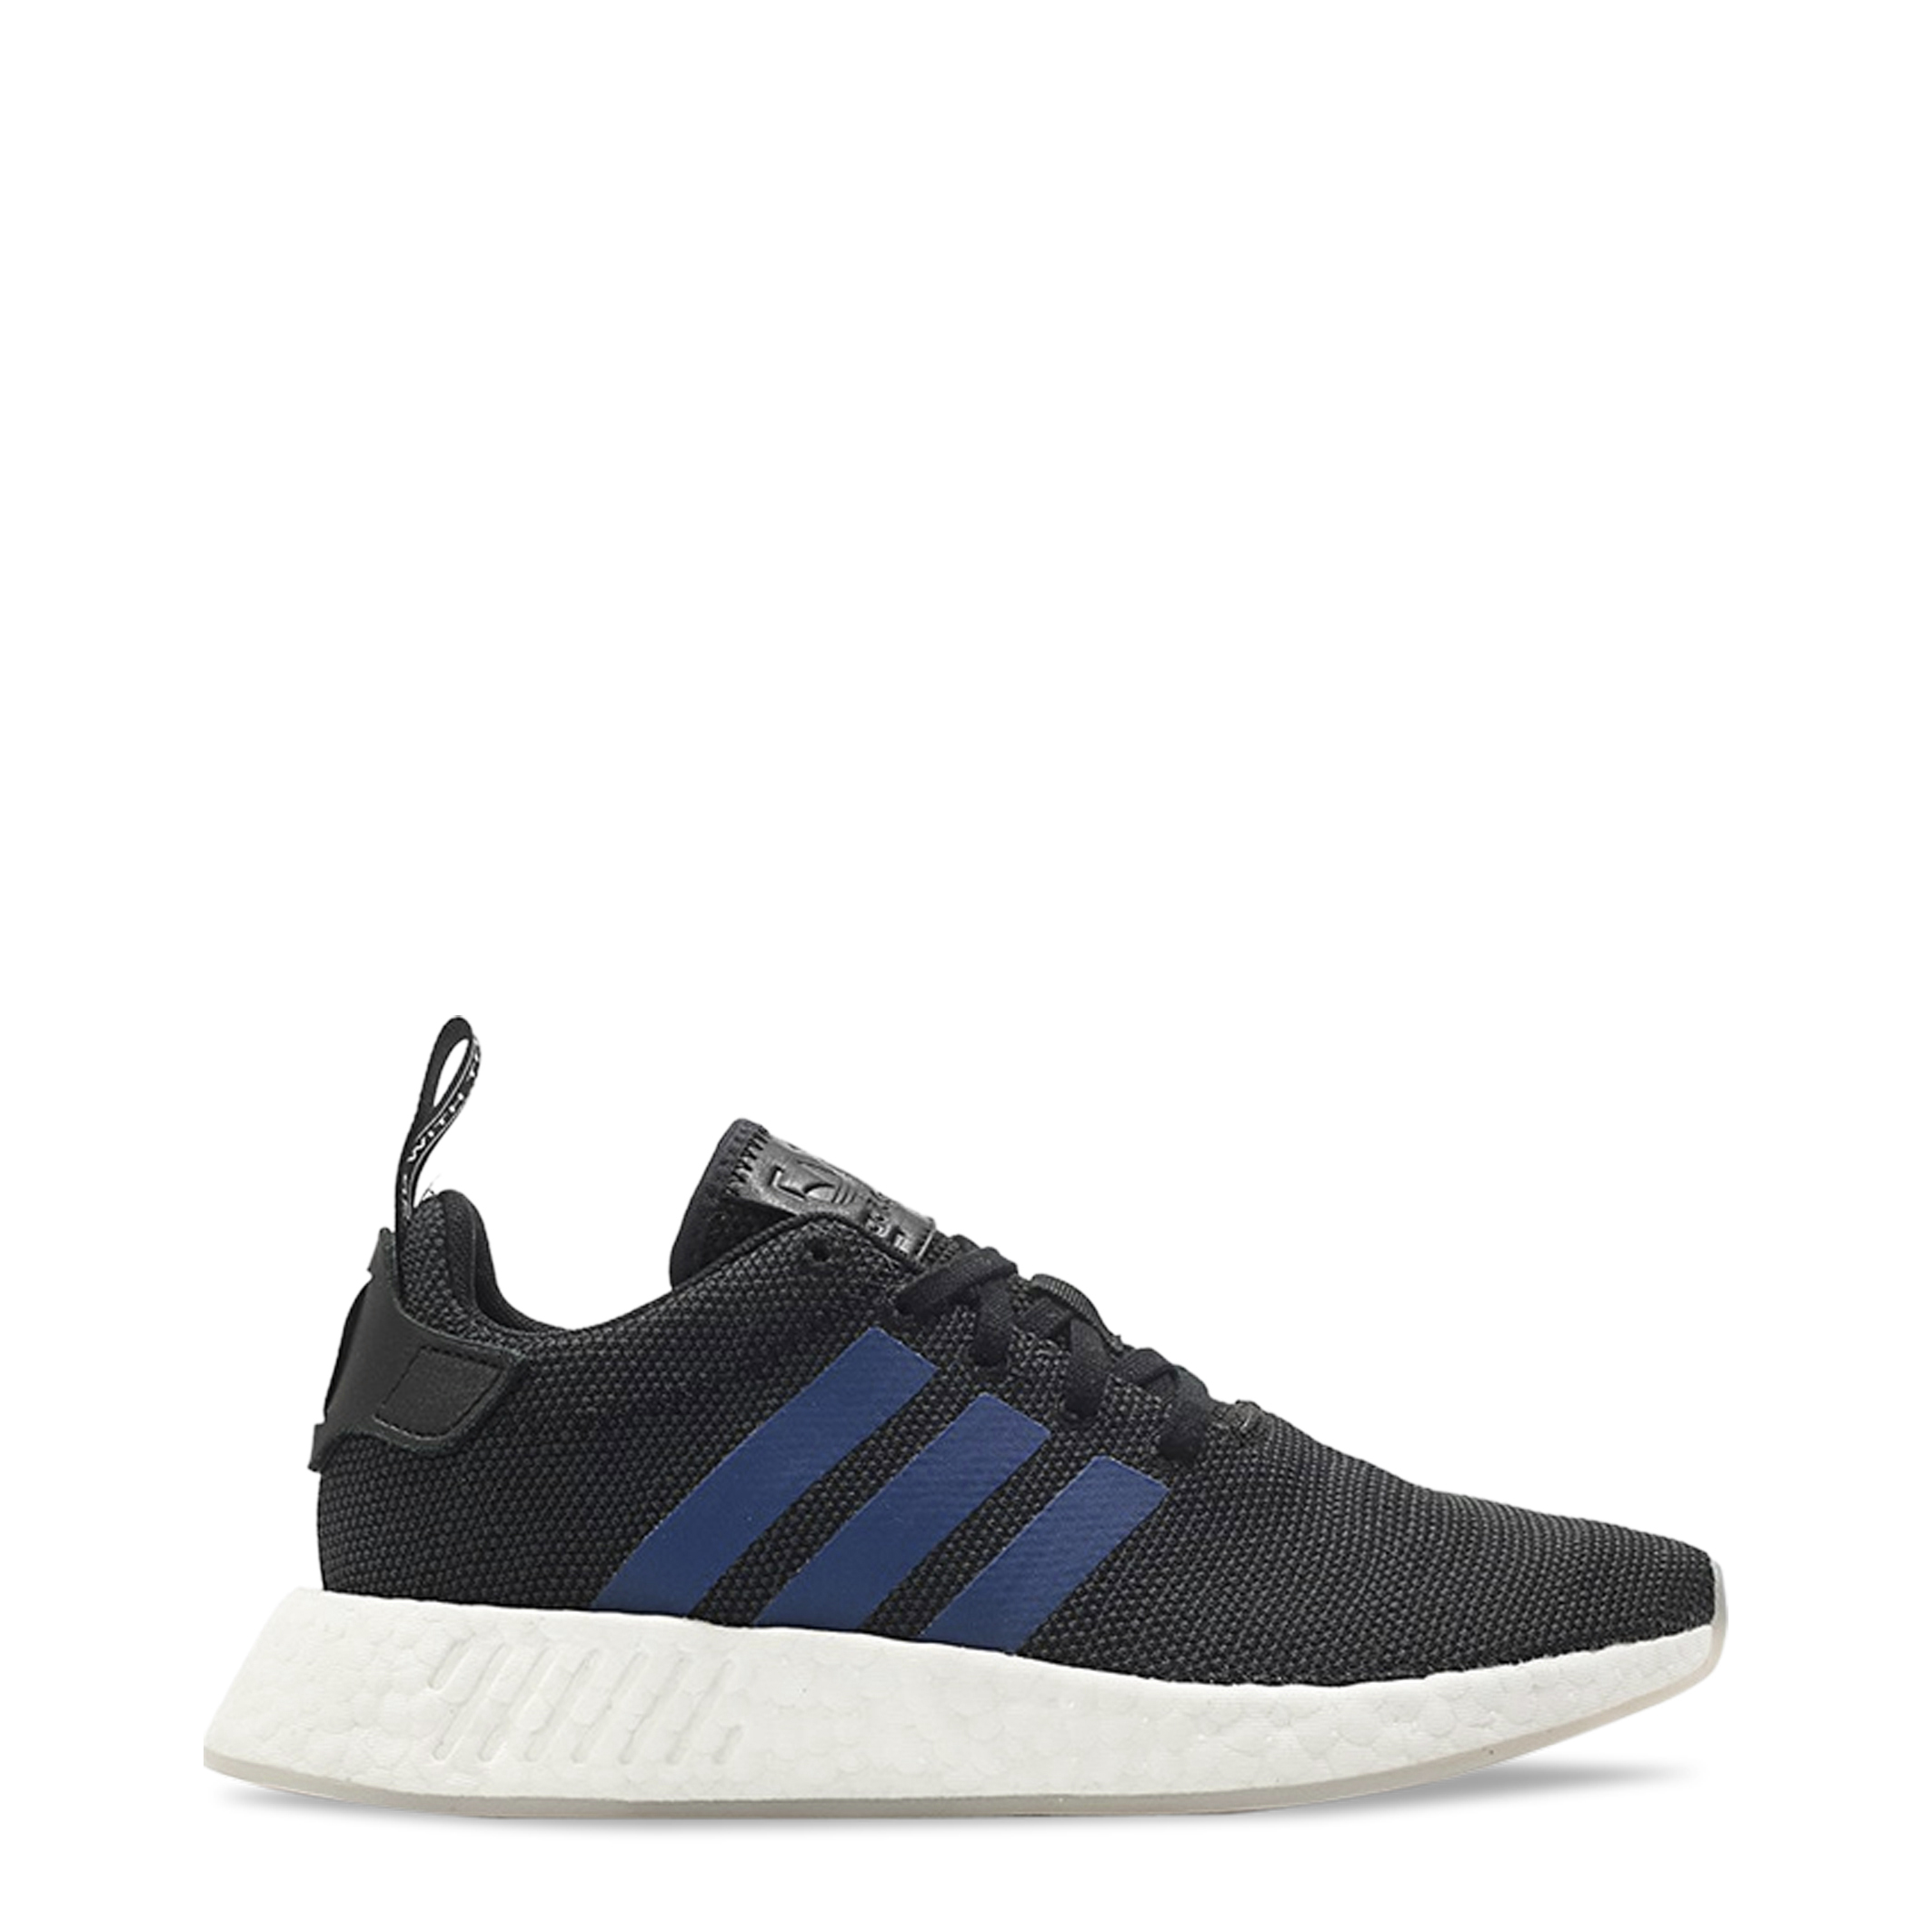 Baskets / Sneakers  Adidas NMD-R2-W blue